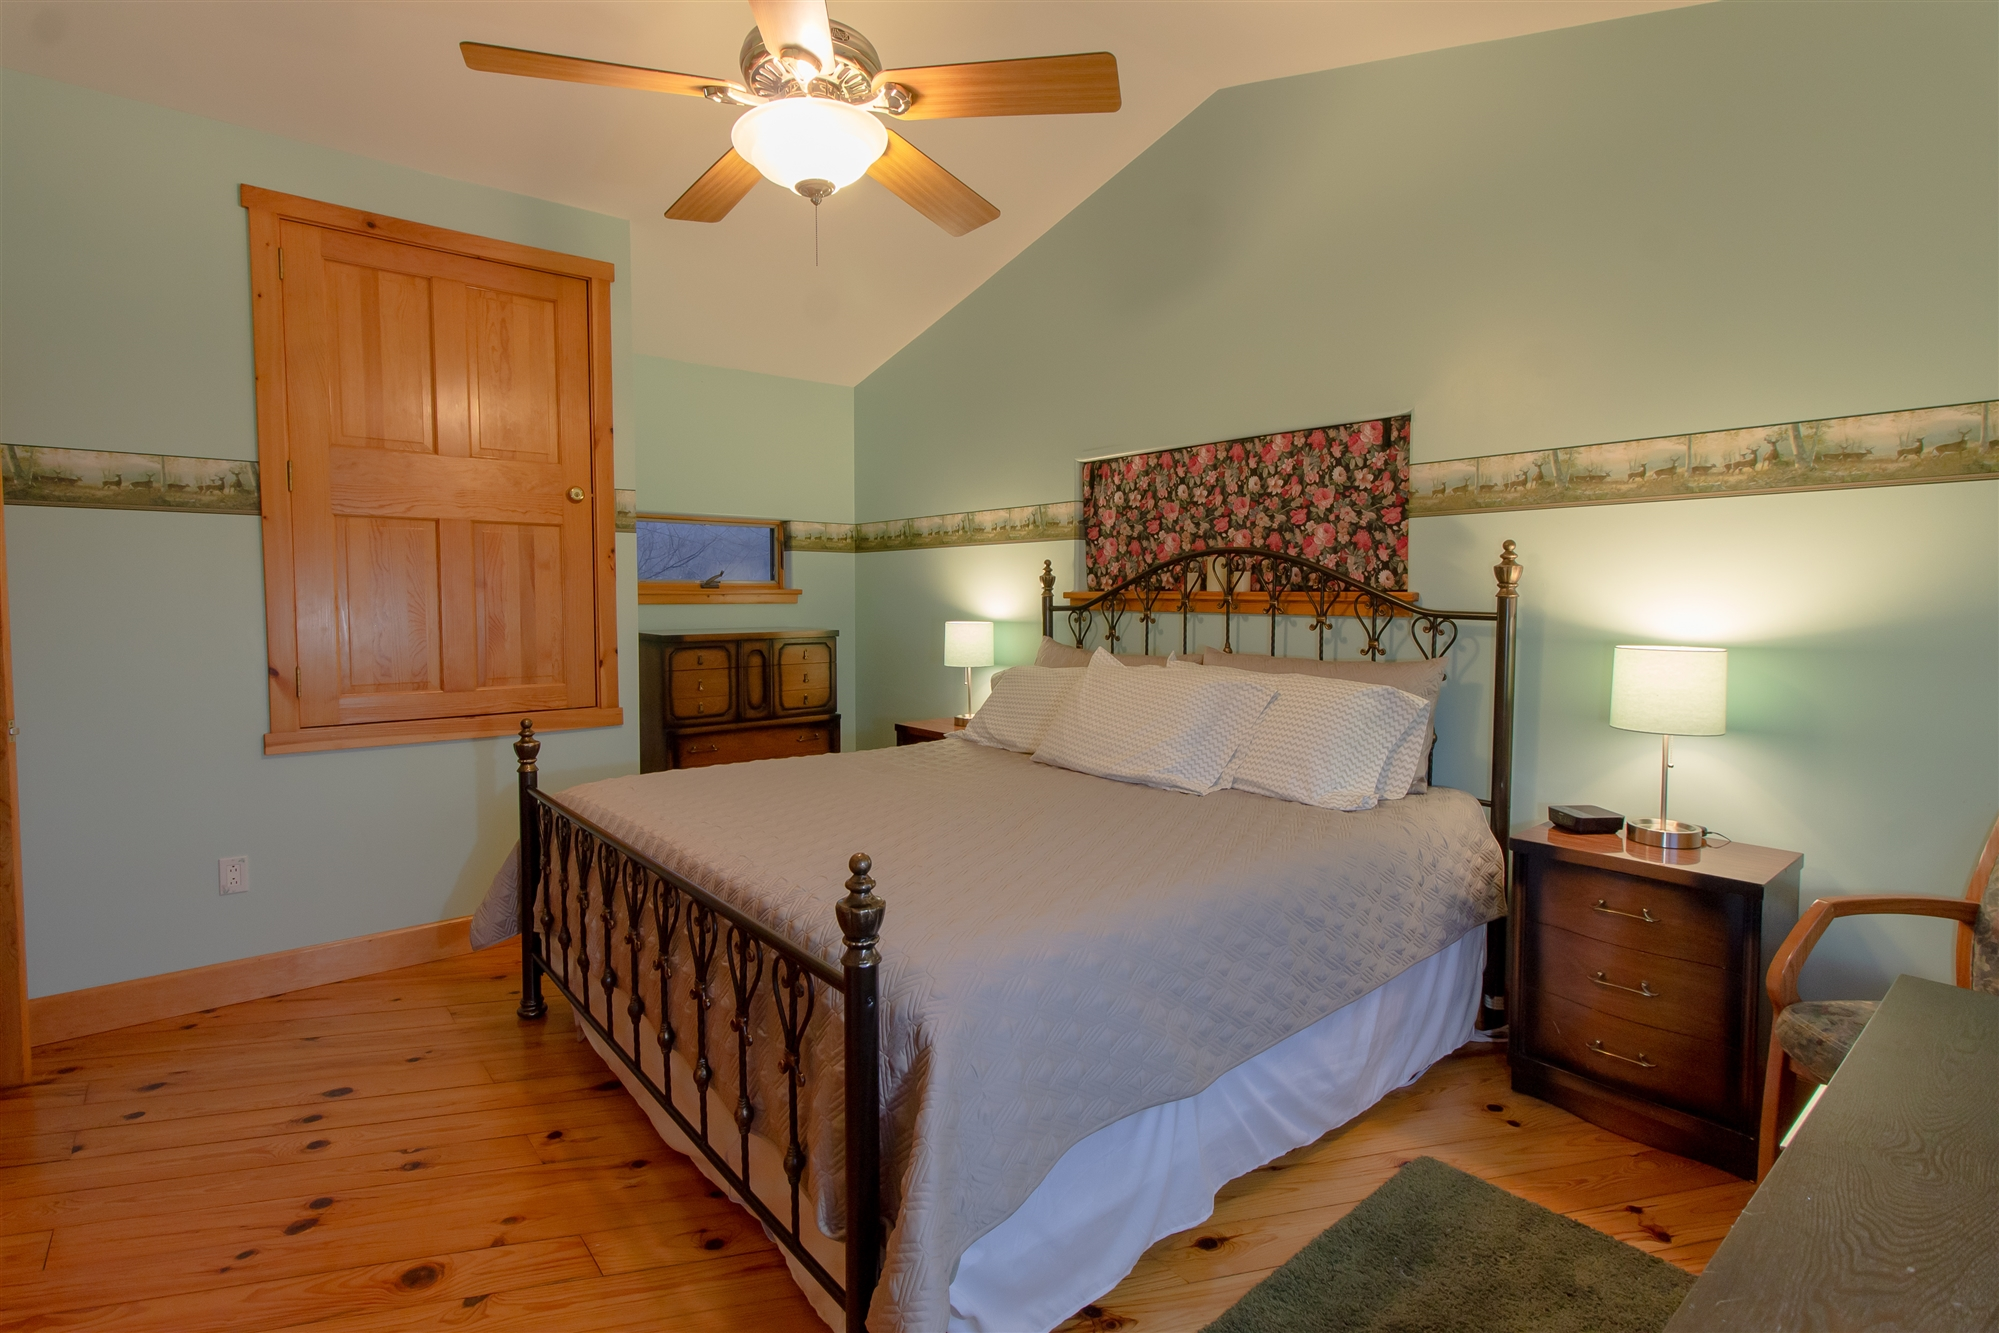 Image for The Bunkhouse Family Suite 2 bedrooms/1 bath